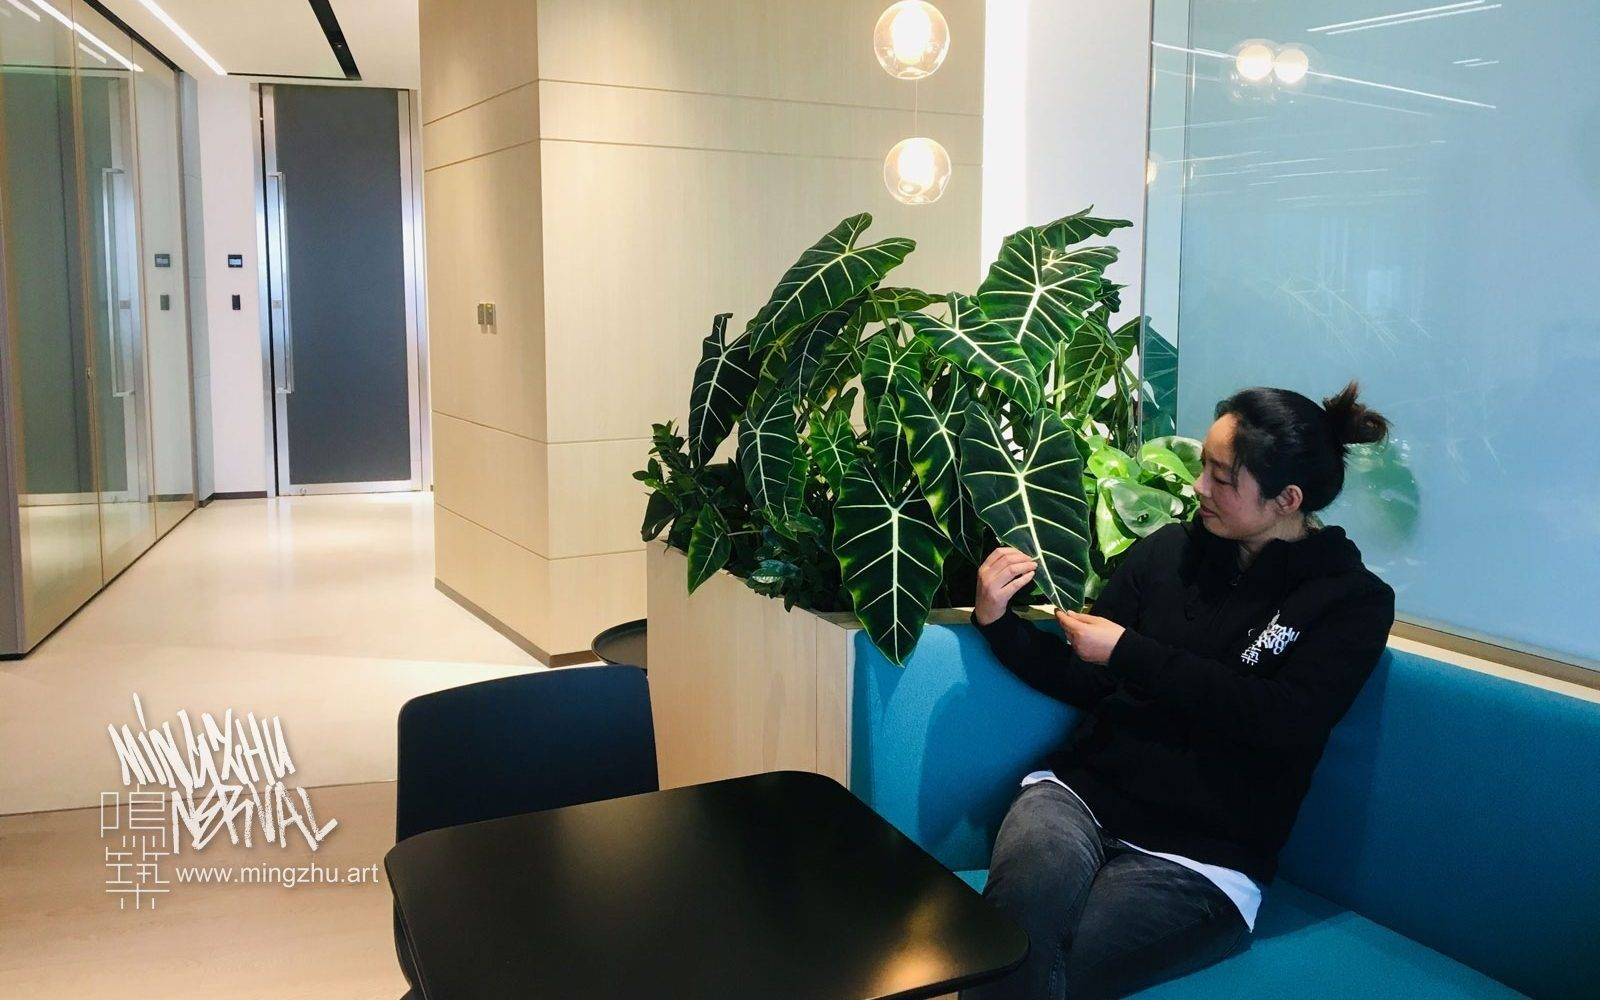 Mingzhu Nerval vertical living wall experts created a healthy nature workspace at Khazanah Nasional in Shanghai, 2018